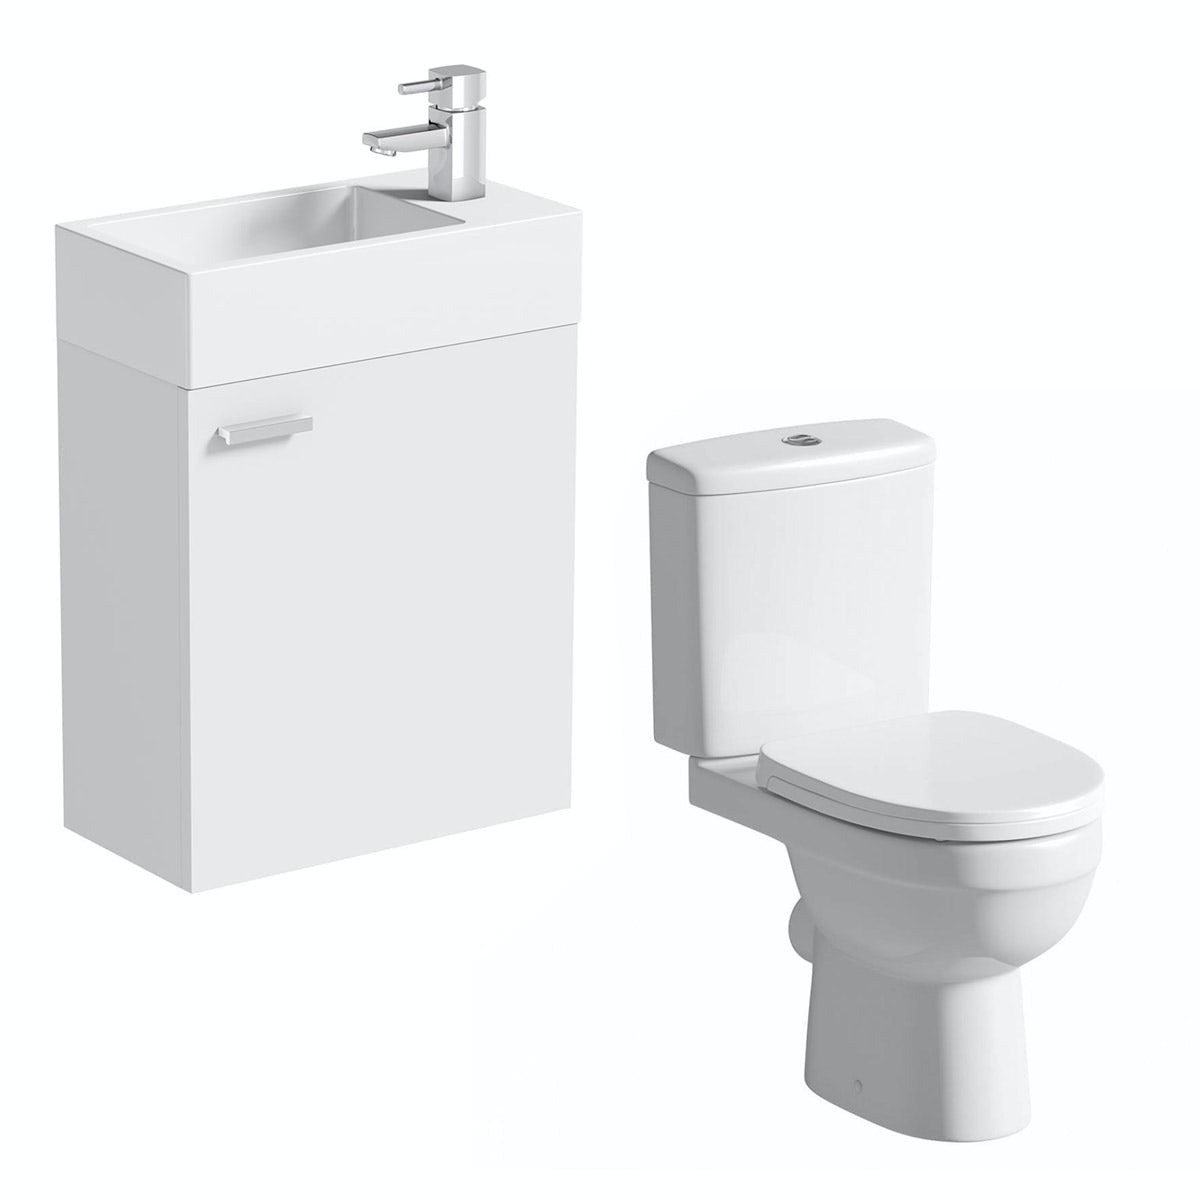 Clarity Compact white wall hung cloakroom suite with contemporary close coupled toilet